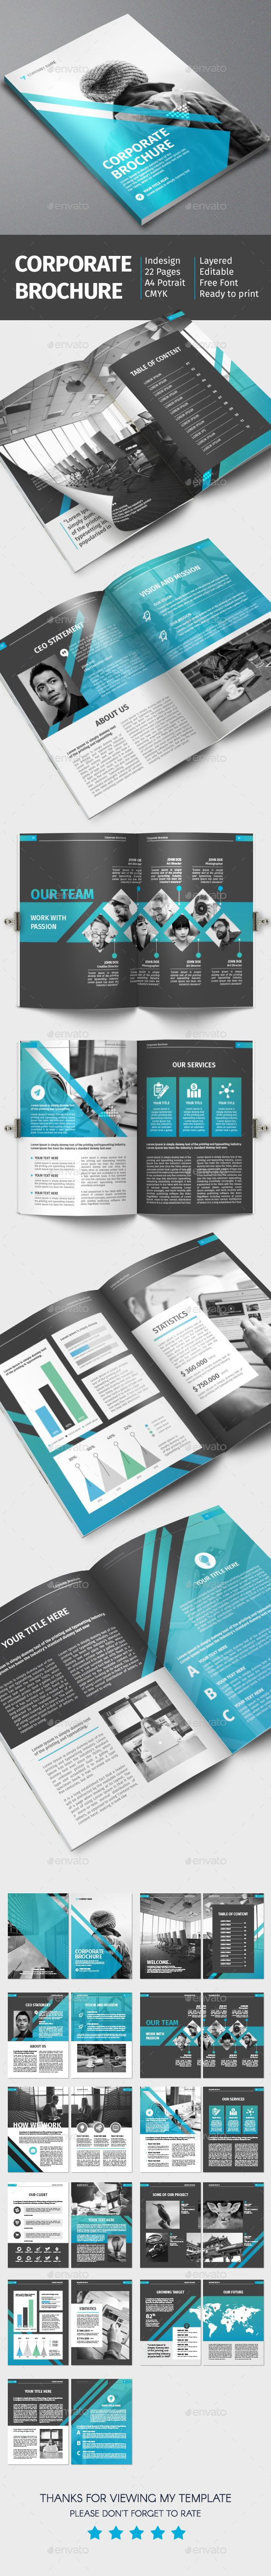 Corporate Brochure Template InDesign INDD. Download here: http ...